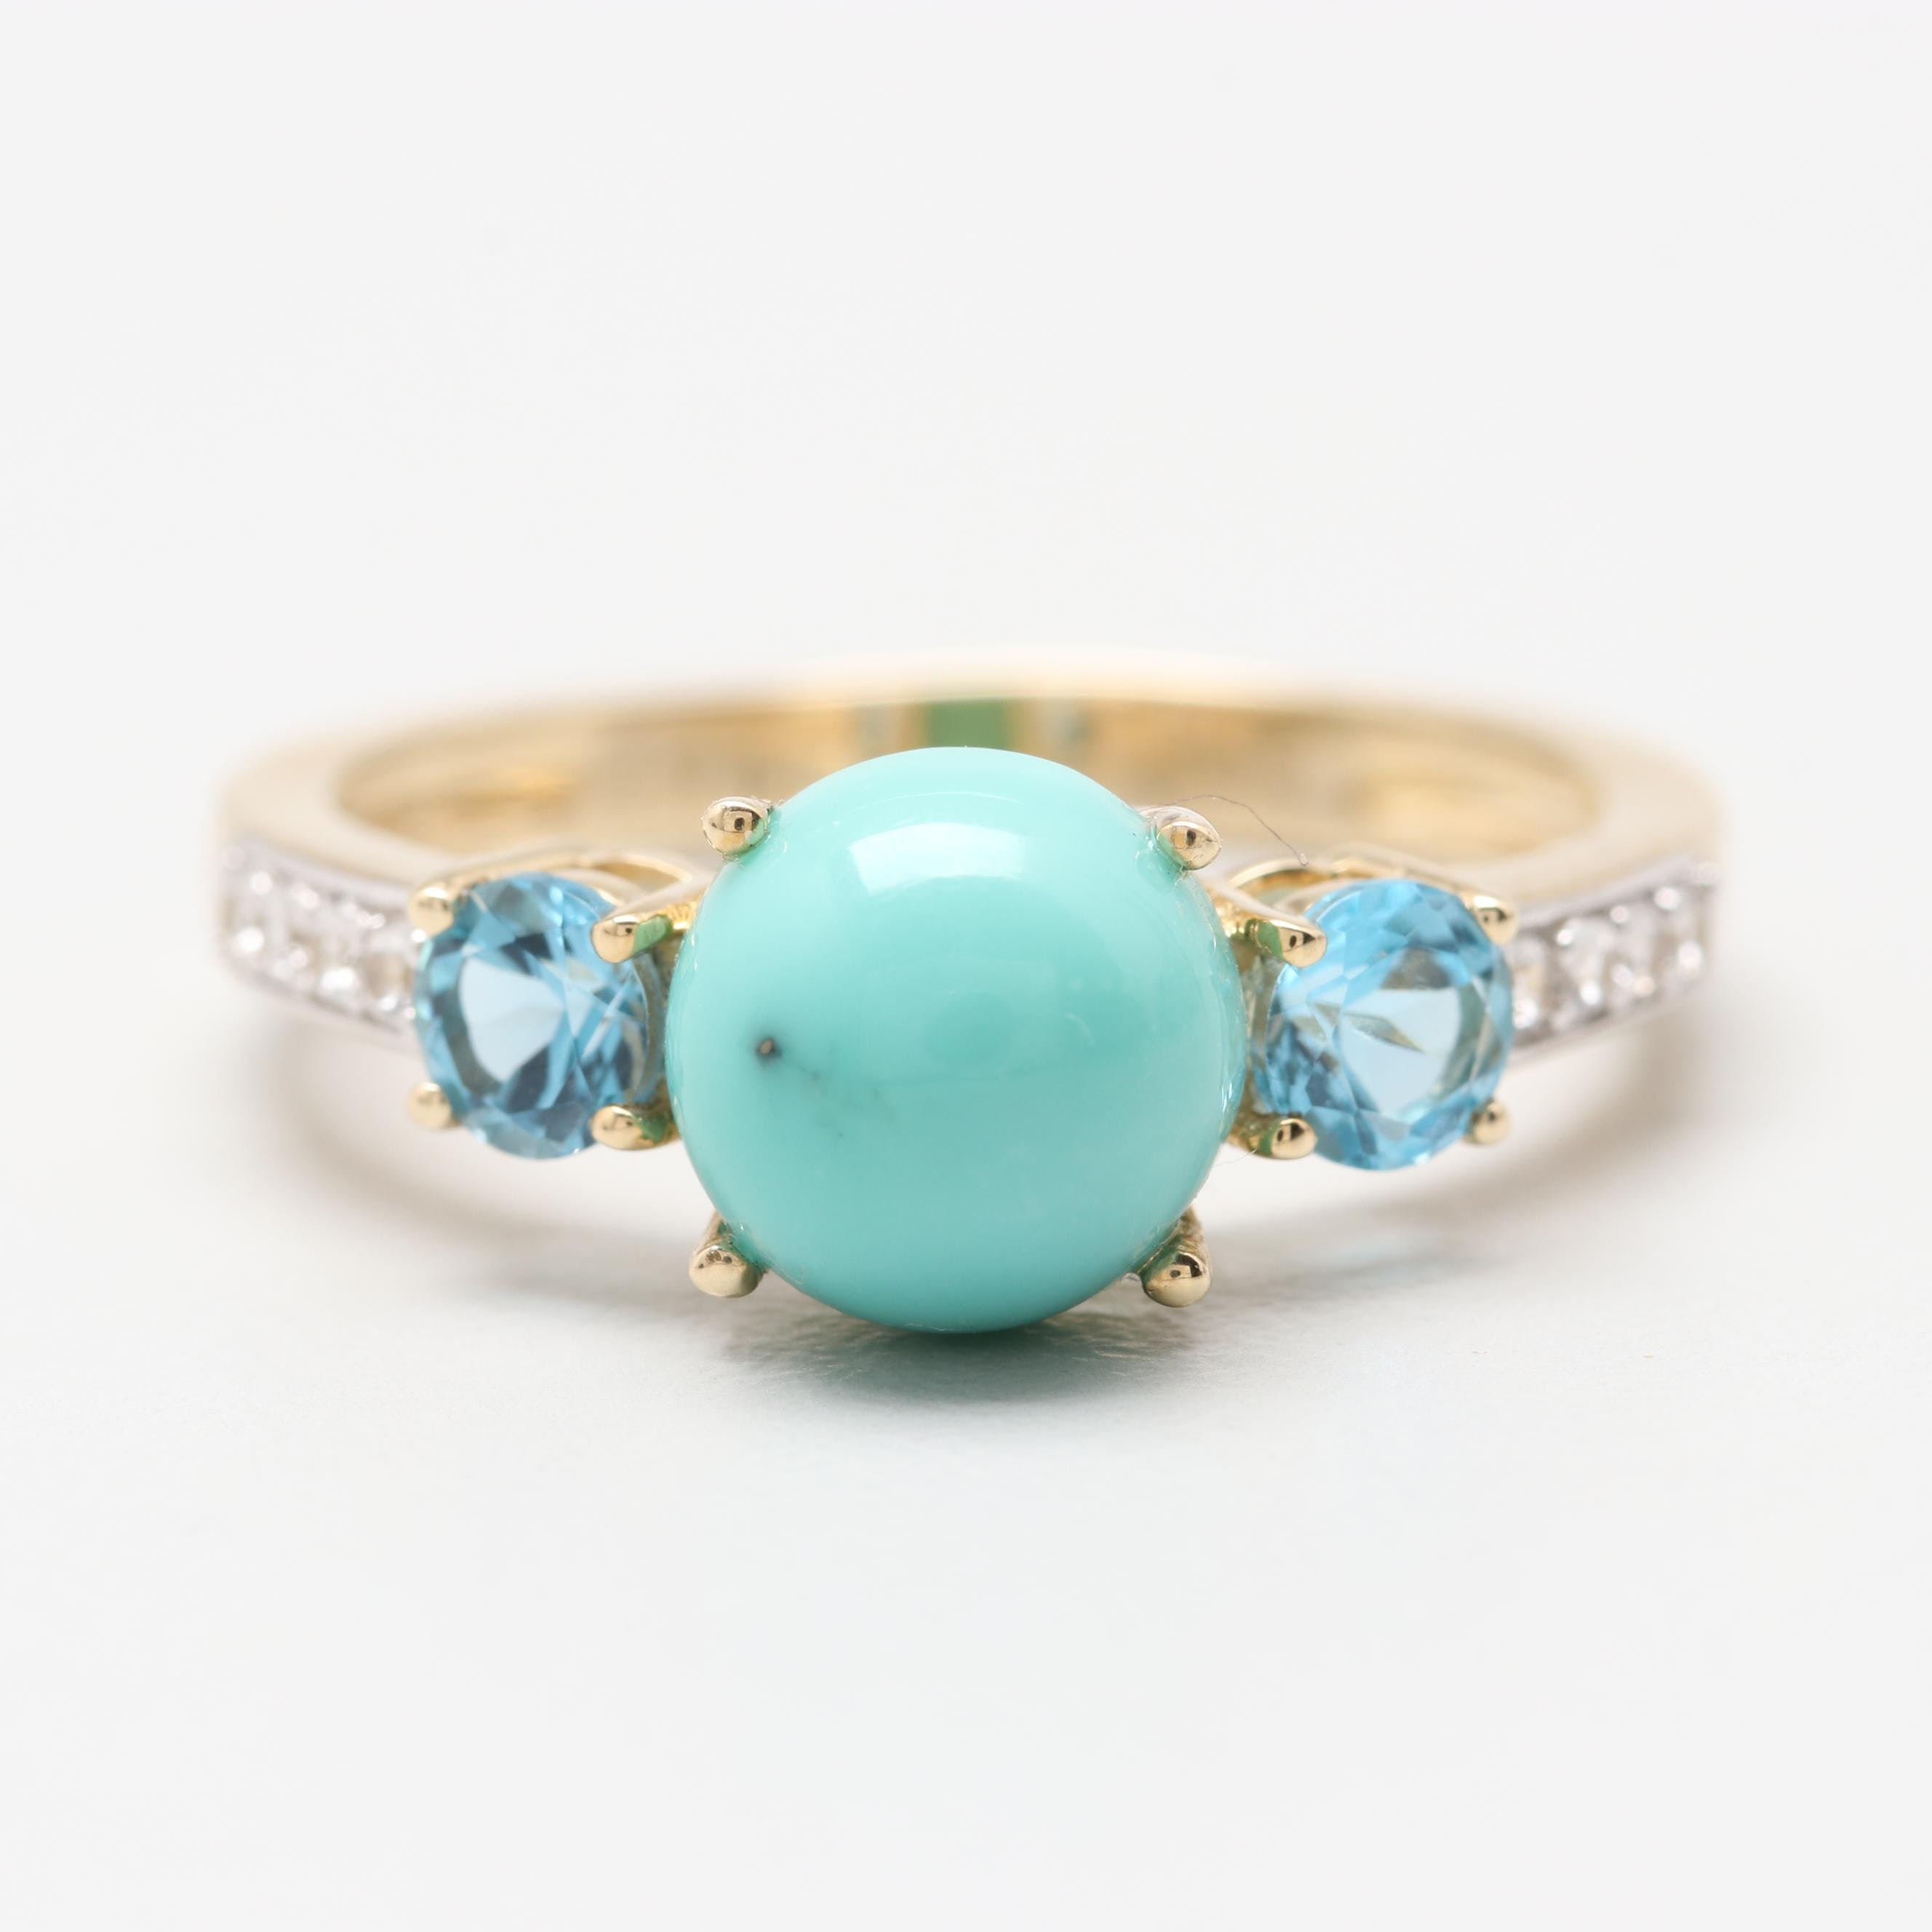 10K Yellow Gold Turquoise, Blue Topaz and White Topaz Ring